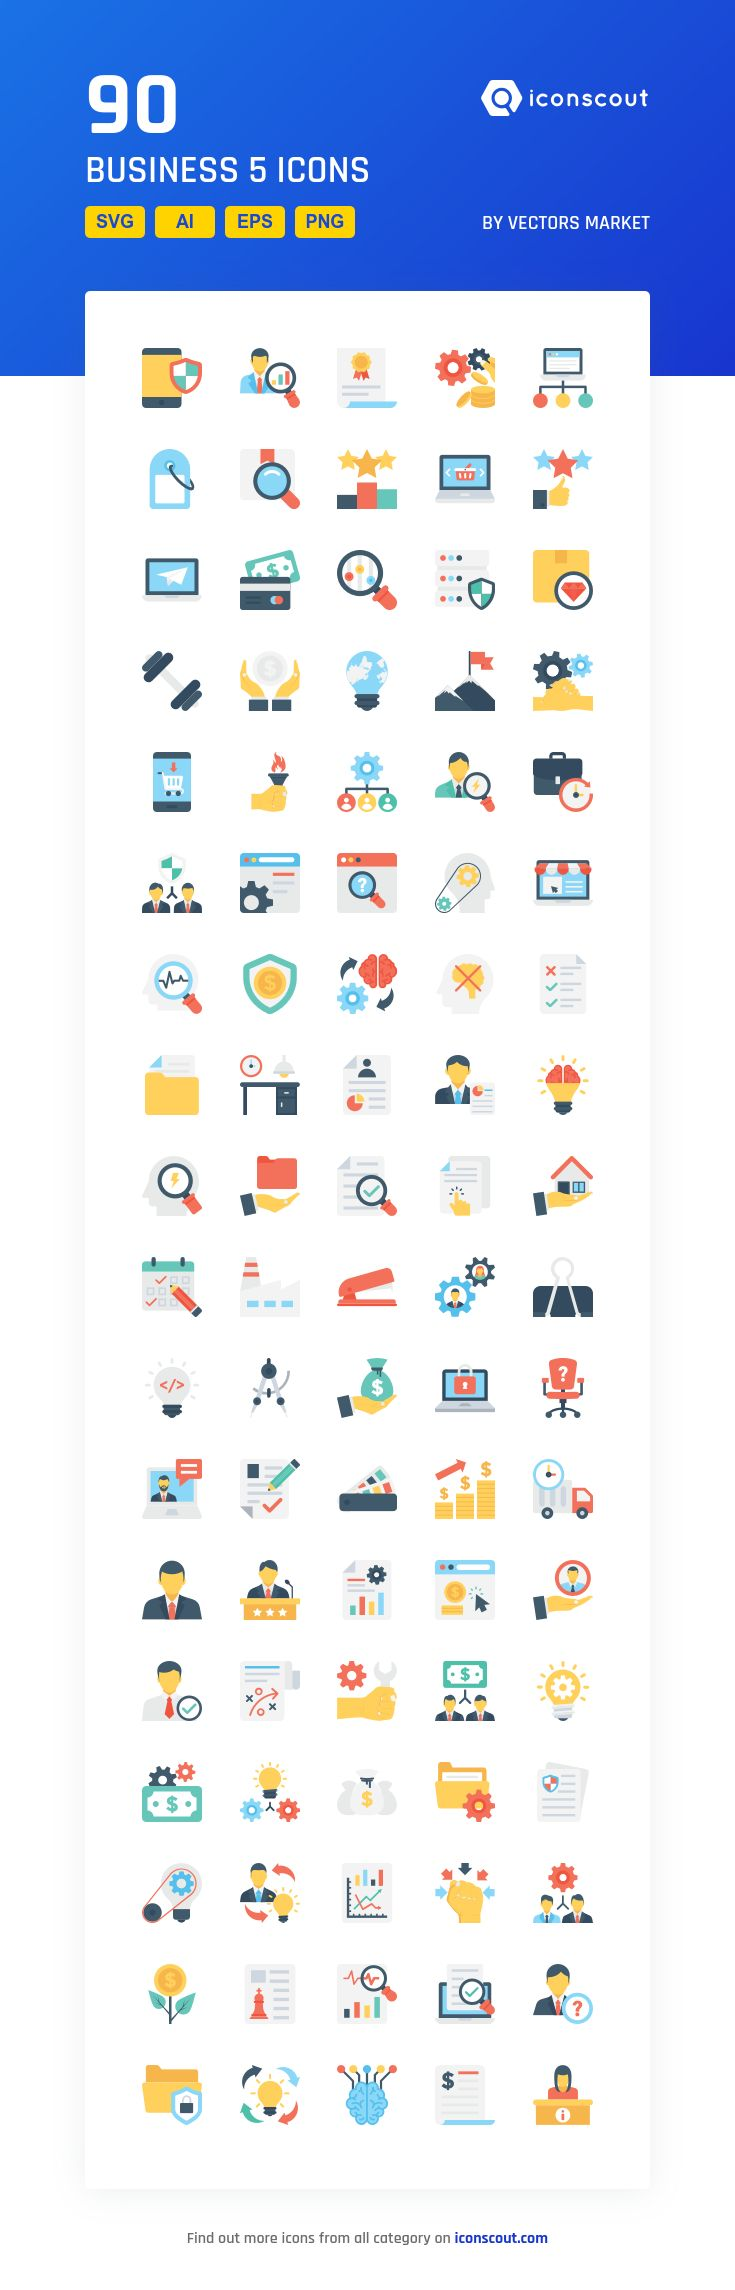 Business 5  Icon Pack - 90 Flat Icons